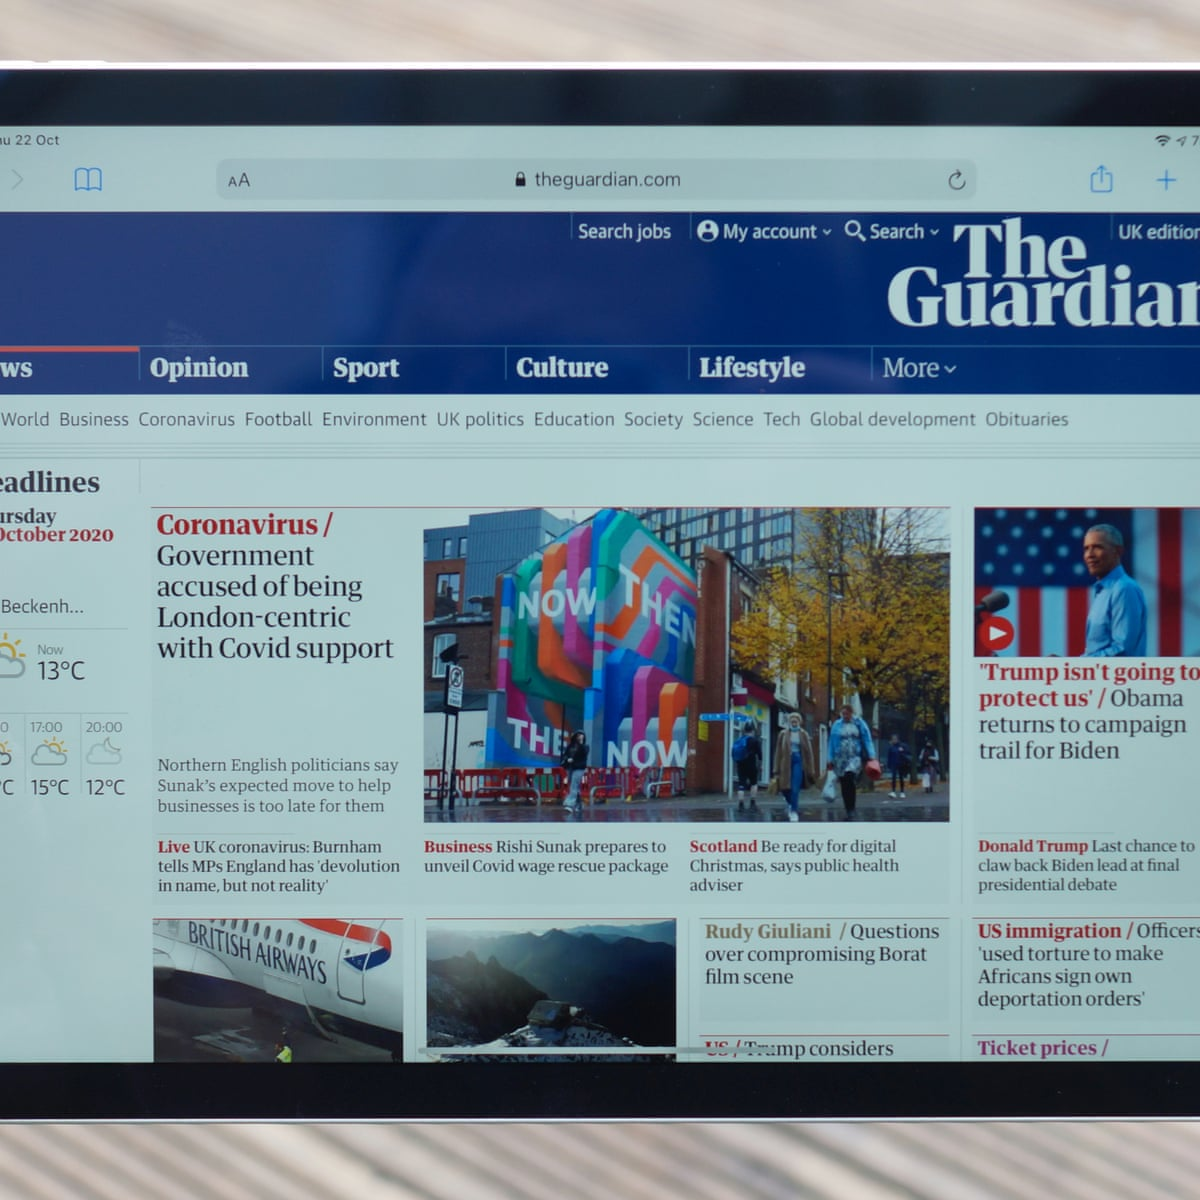 New Window Tablets 2020 Christmas Apple iPad Air 2020 review: a cheaper iPad Pro for the rest of us